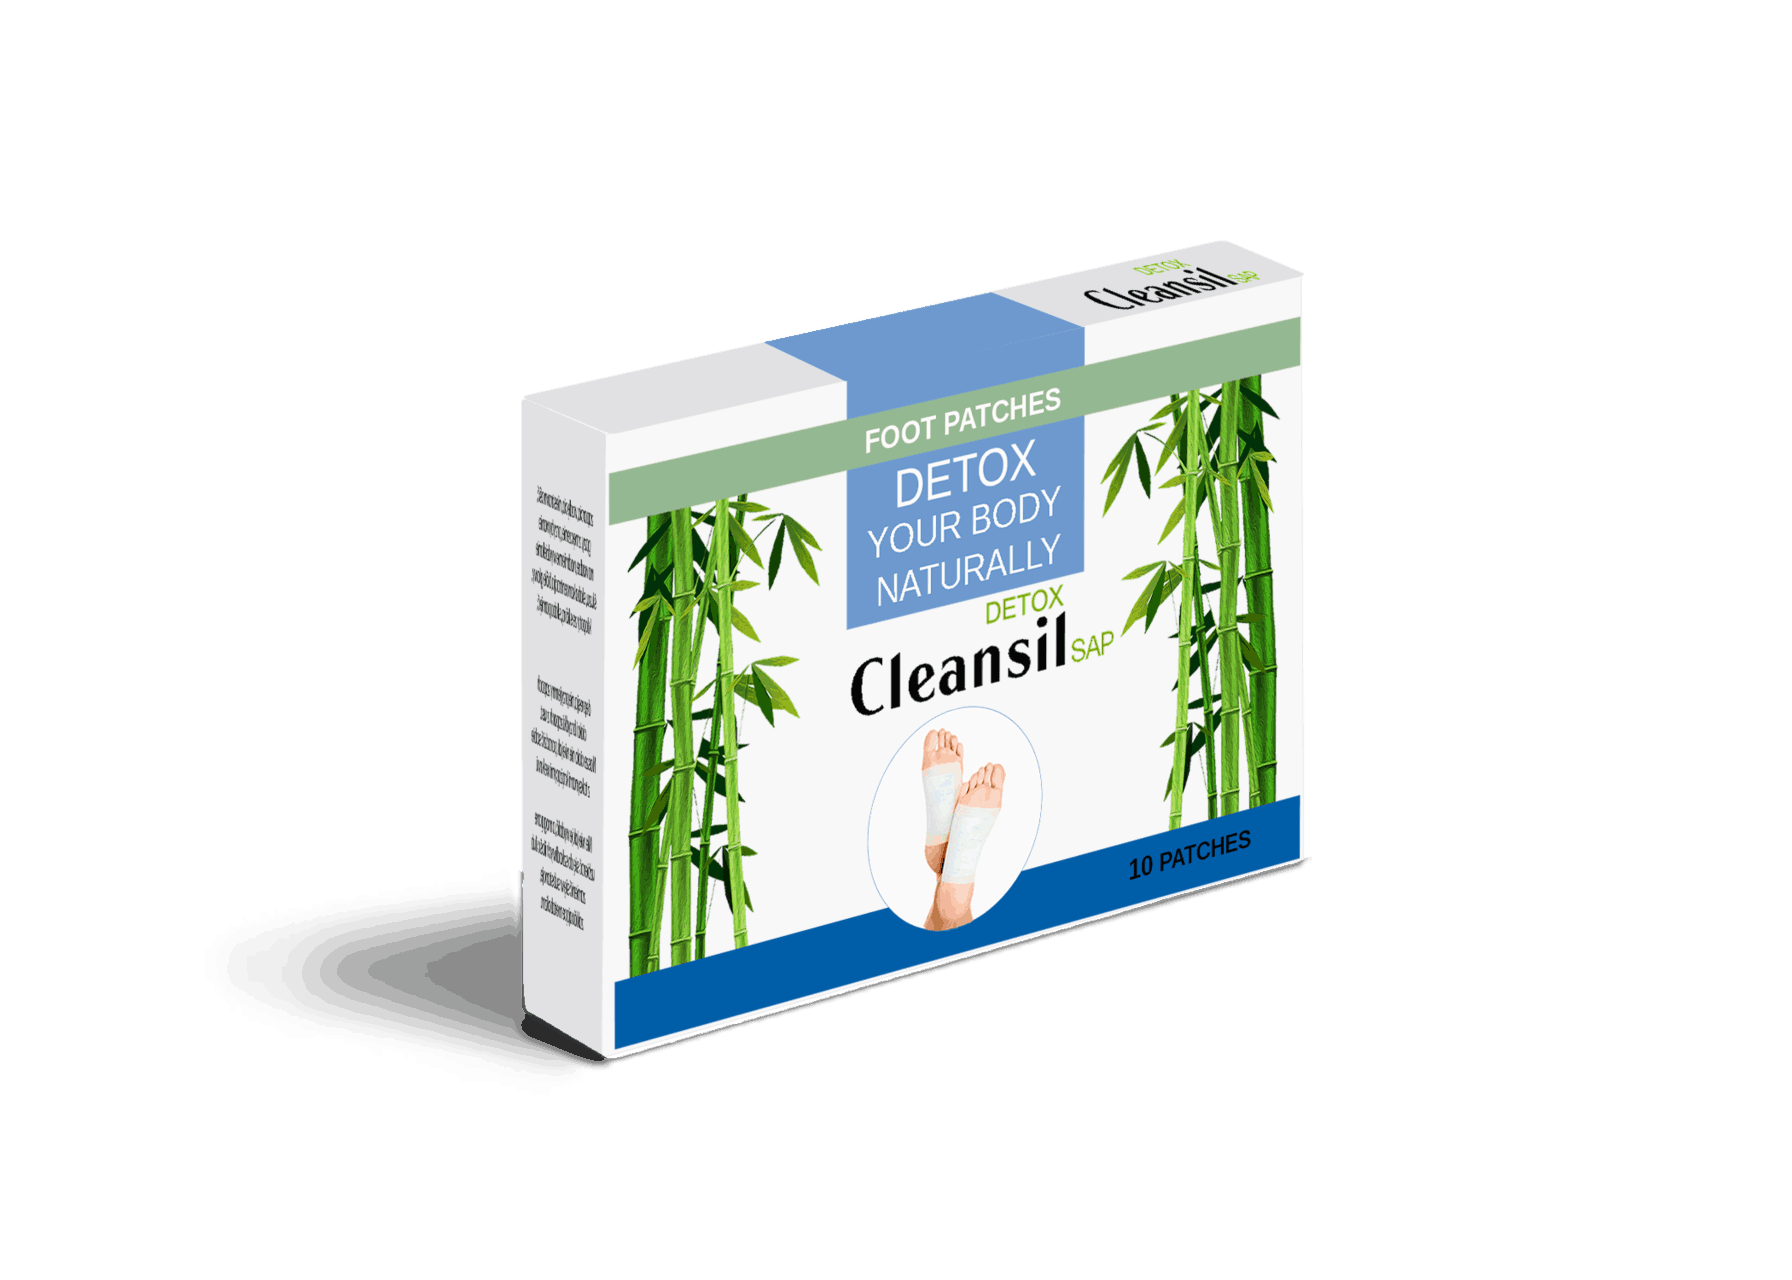 detox your body naturally detox cleansil sap